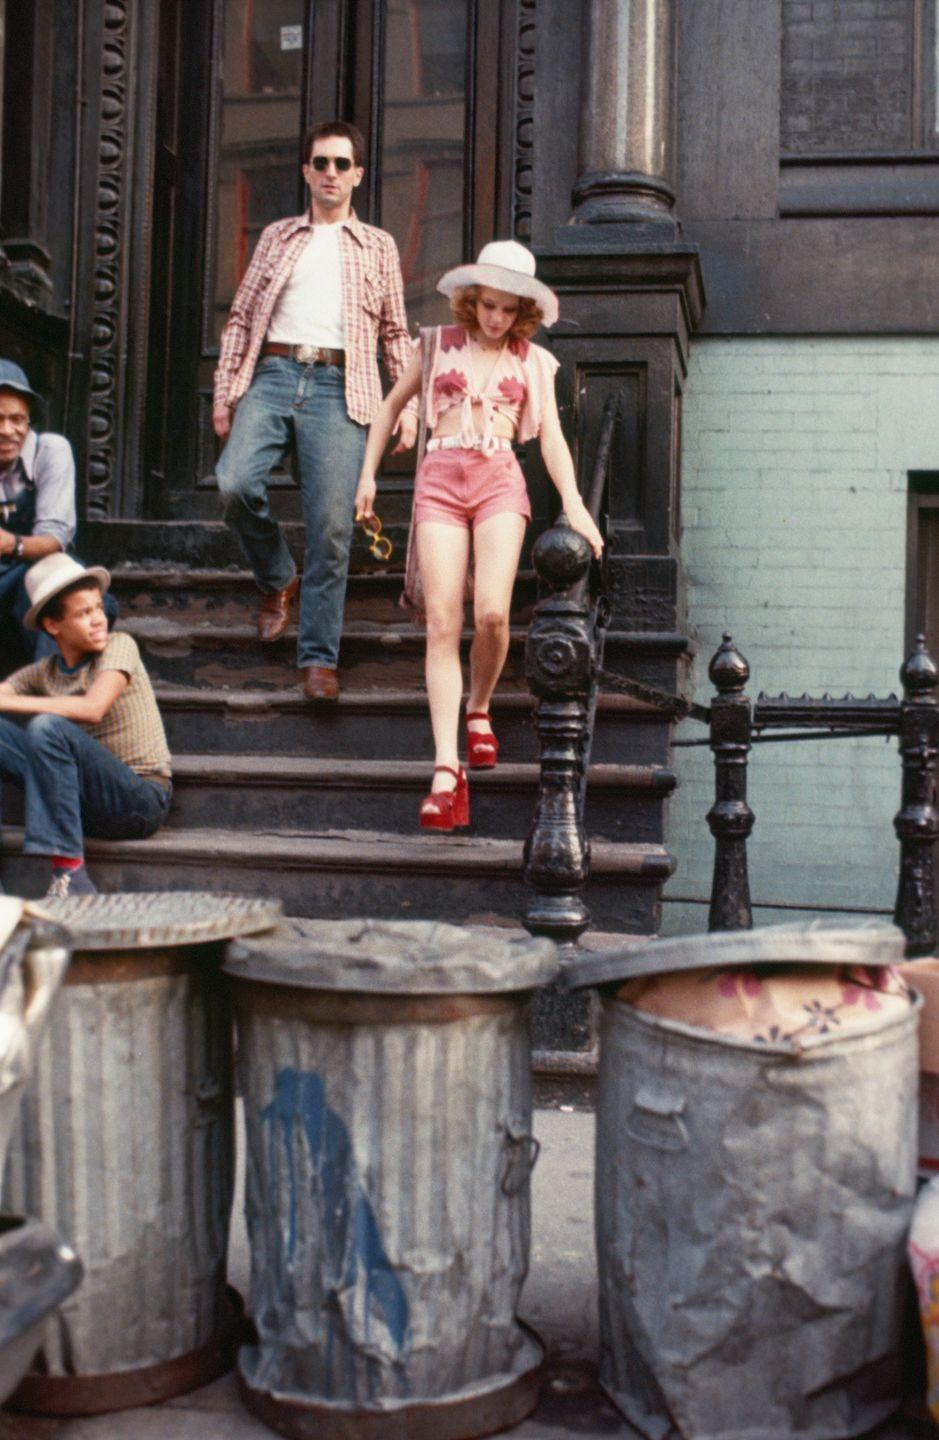 <p>Twelve-year-old actress Jodie Foster became well known for her role as Iris, a child prostitute, in <em>Taxi Driver</em>, and for her red platform sandals. </p>